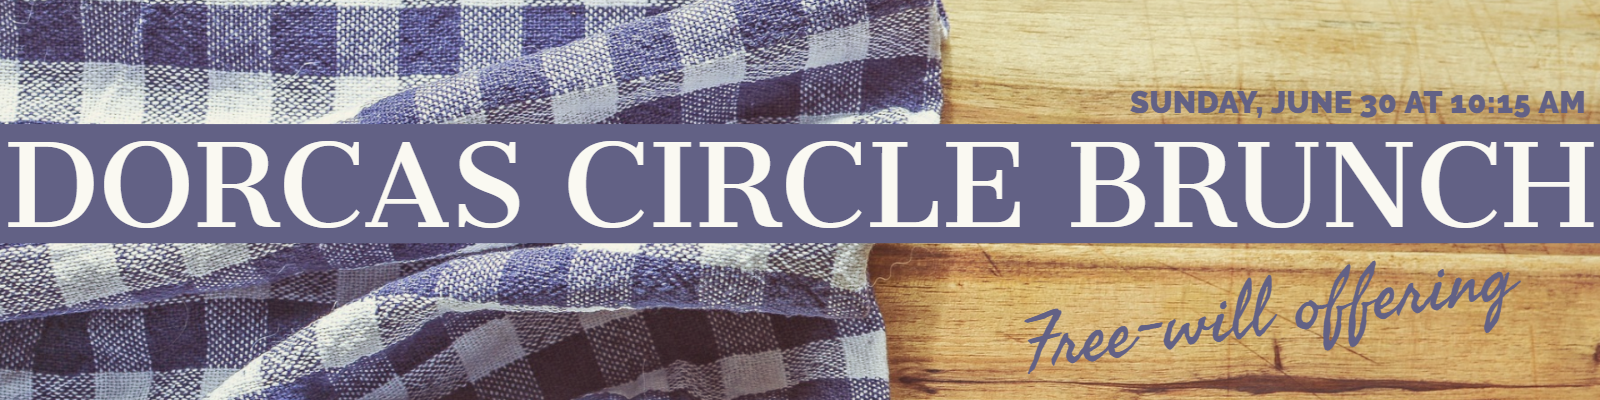 Join the Dorcas Circle for their biggest fundraiser of the year!